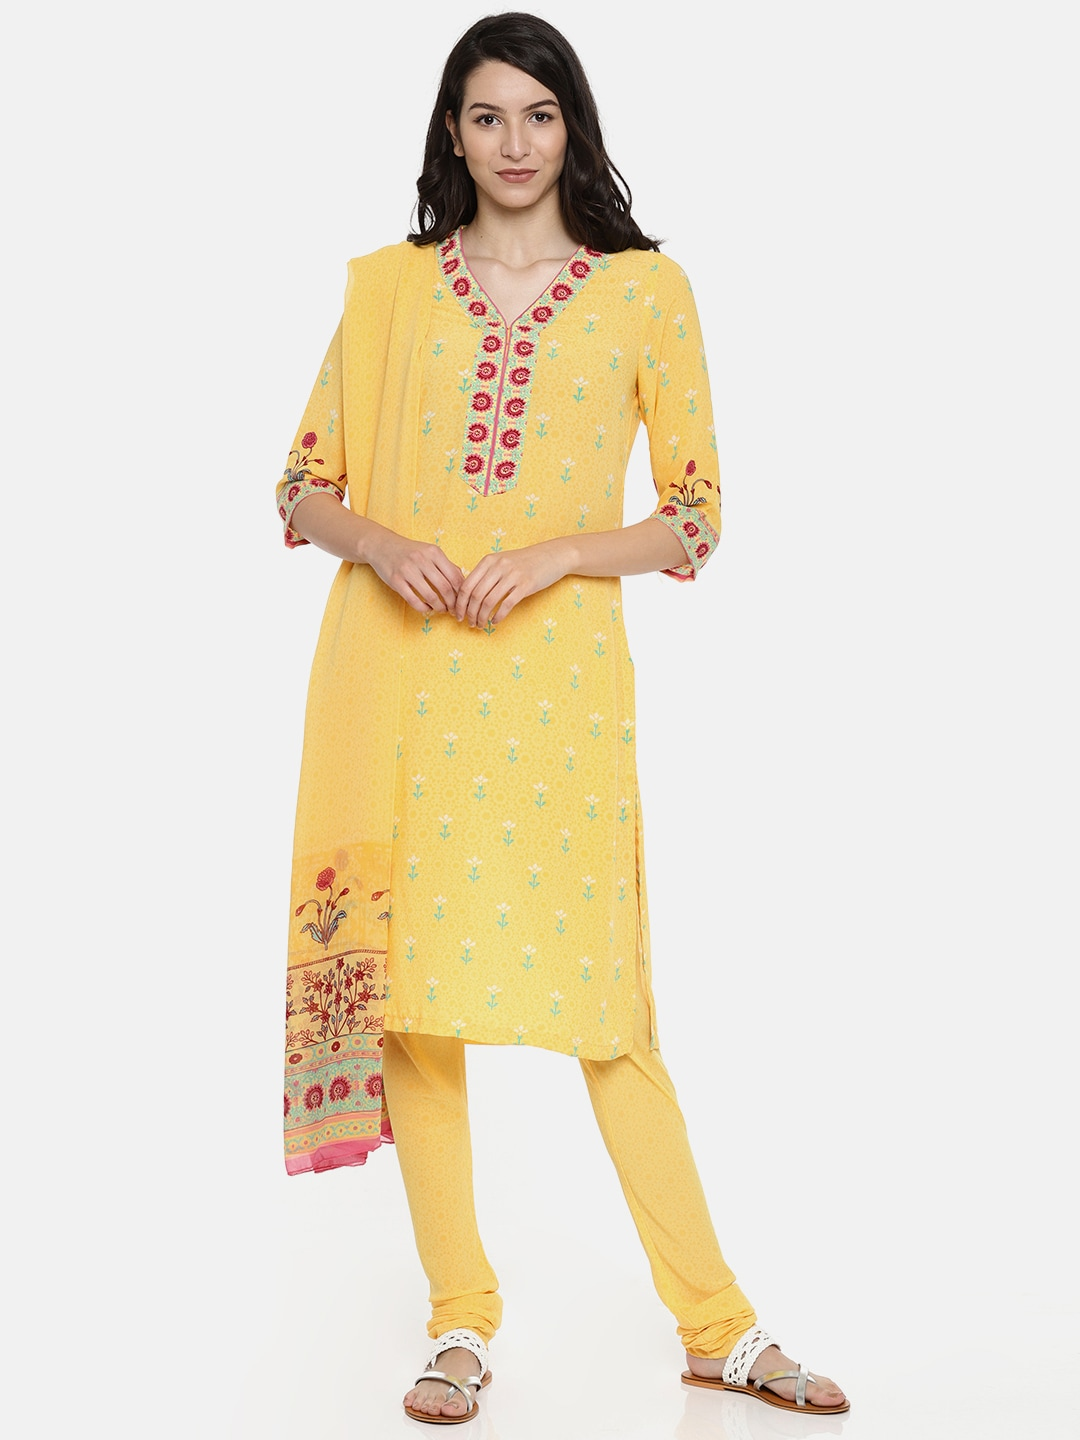 349b665f066 Printed Kurtas Sets Kurta Sets Suits - Buy Printed Kurtas Sets Kurta Sets  Suits online in India